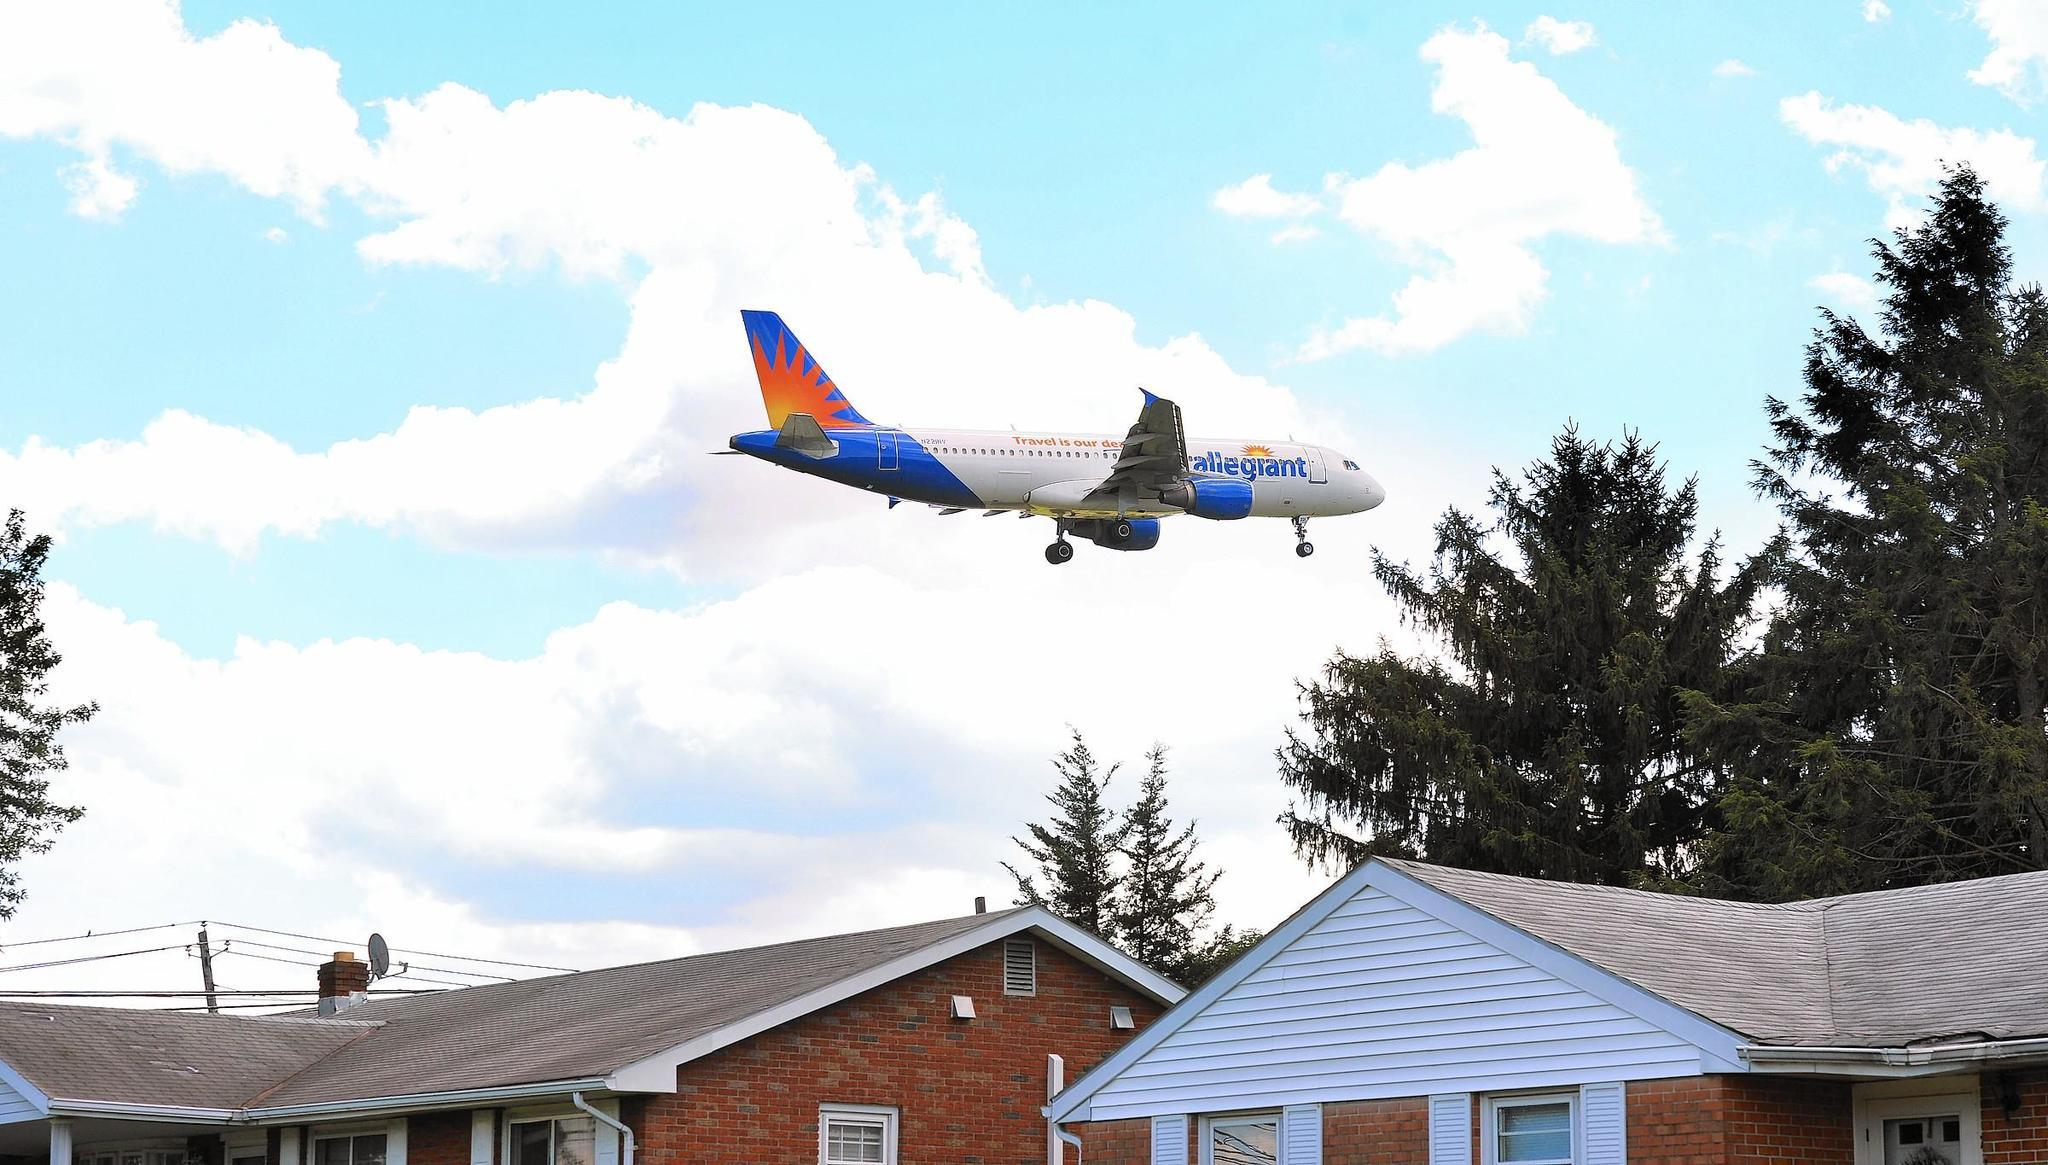 Residents Near Lehigh Valley Airport May Be Hit With Tax